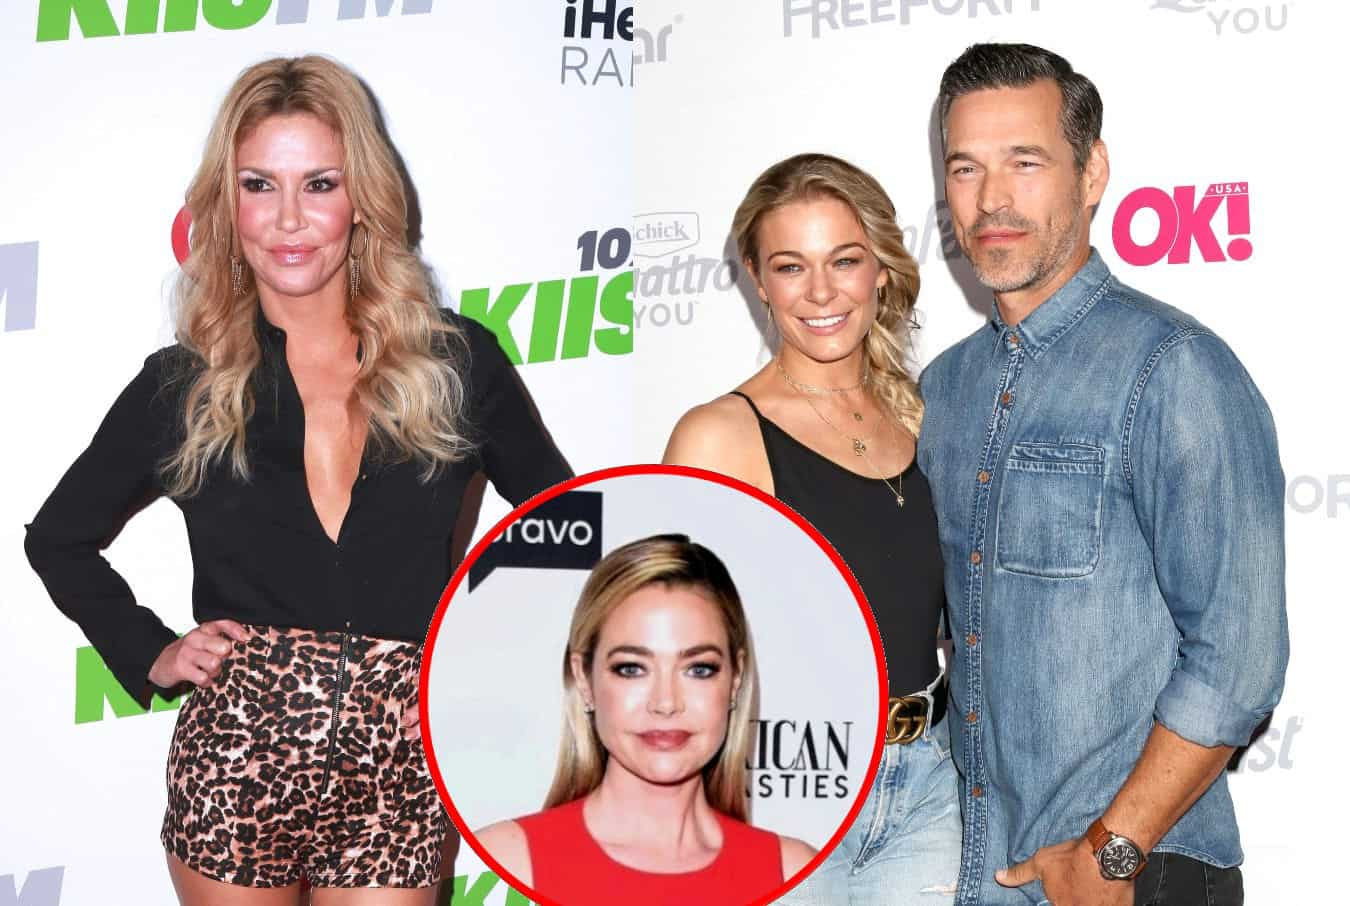 """Brandi Glanville Says She Threatened to Murder LeAnn Rimes Following Singer's Affair With Eddie Cibrian, Claims """"Trust Issues"""" is Why She Exposed Drama With Denise Richards on RHOBH"""